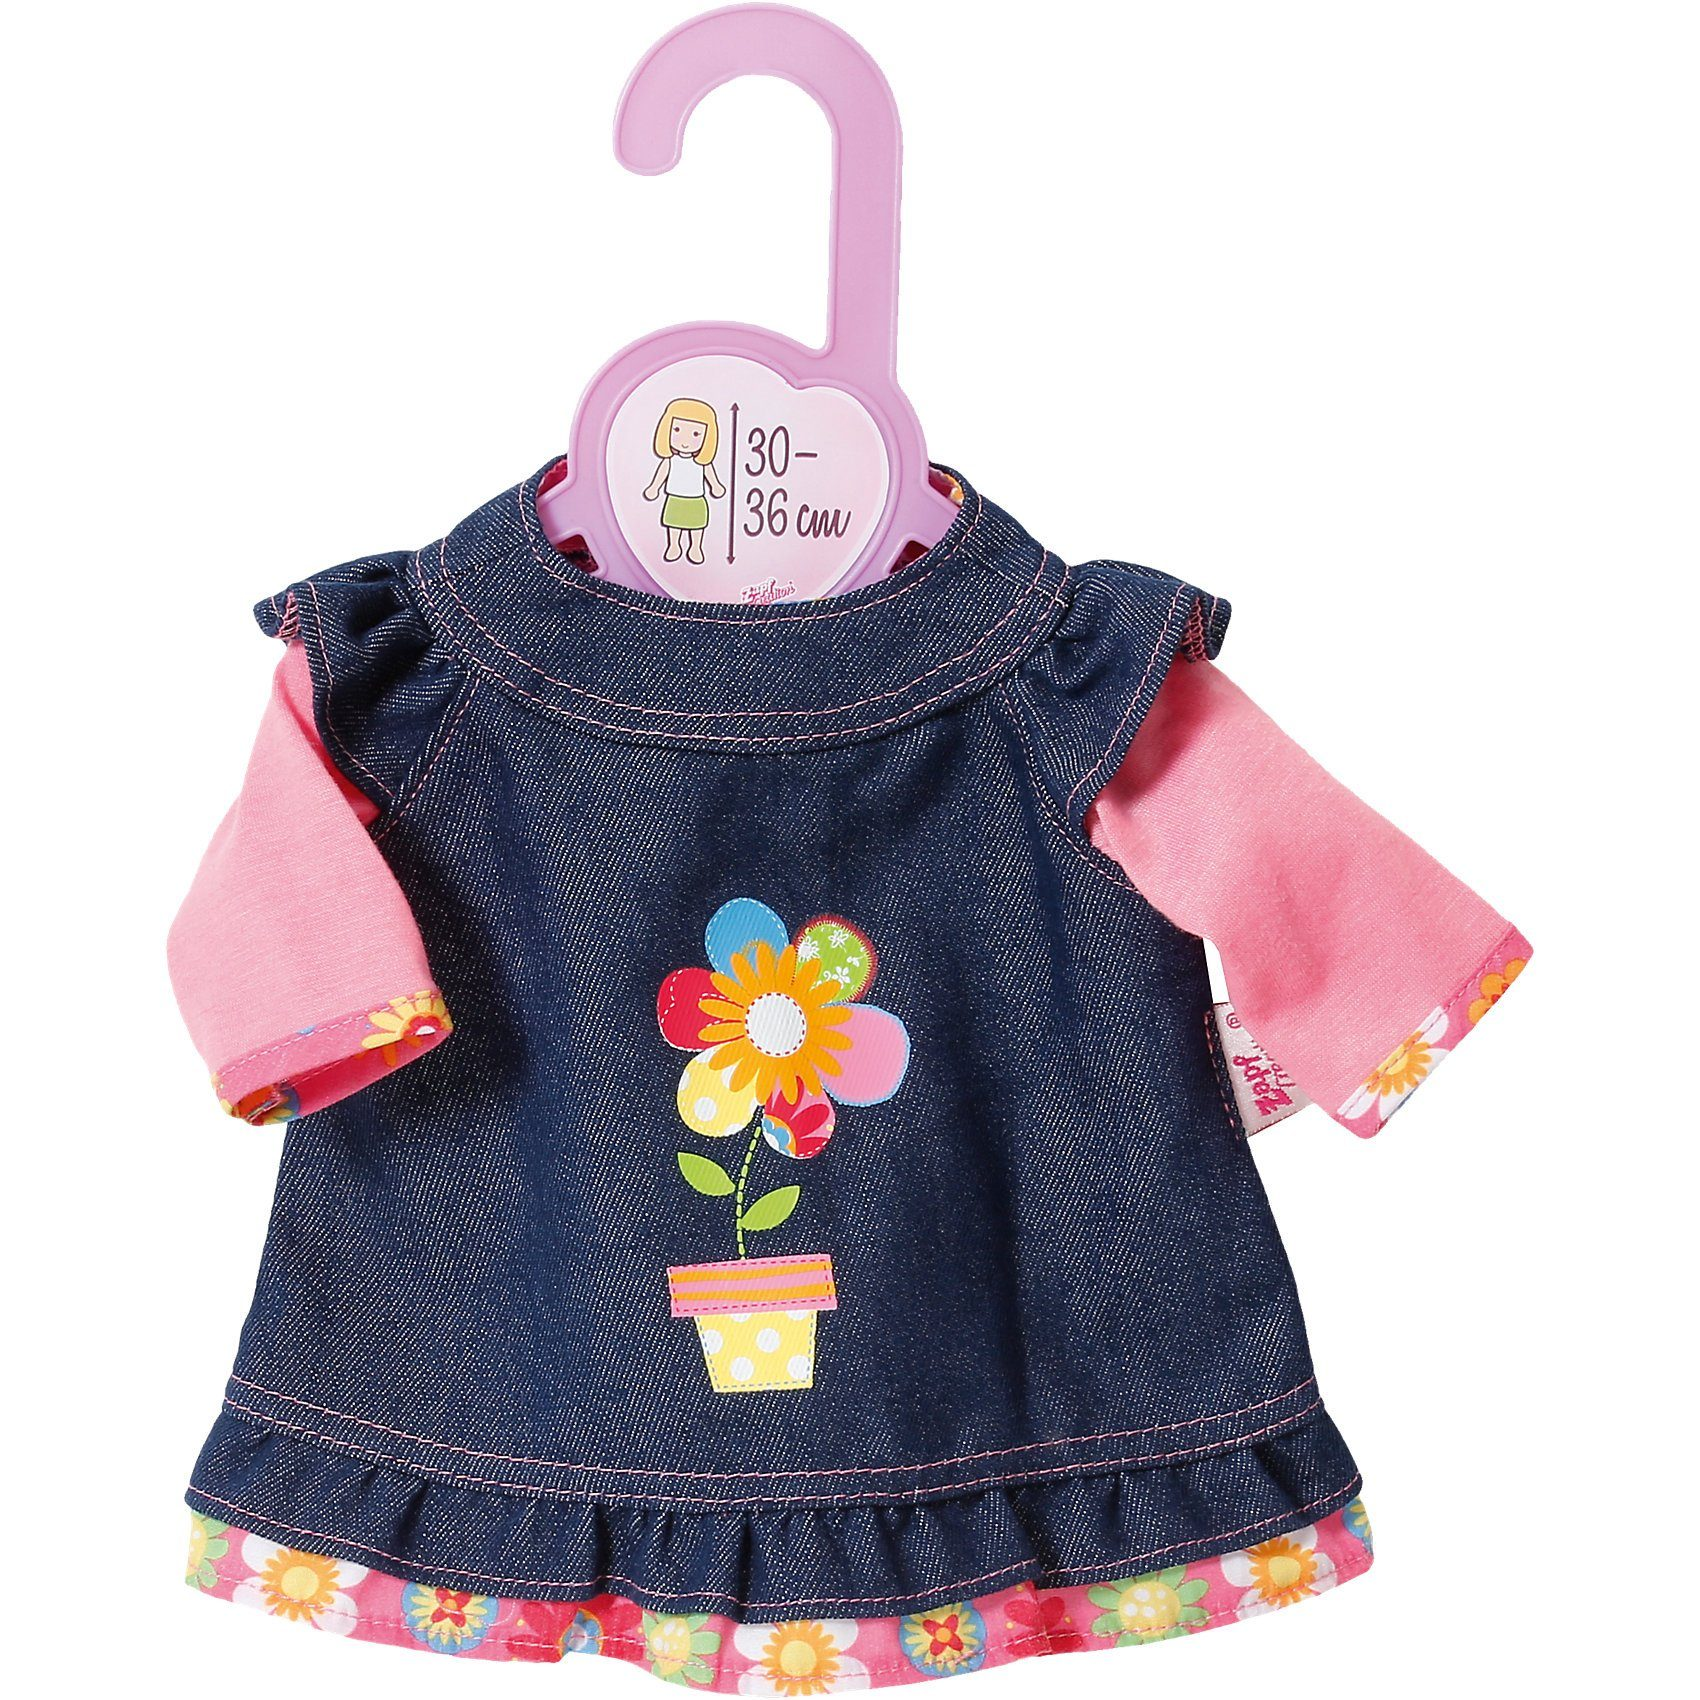 Zapf Creation Dolly Moda Jeanskleid 30-36 cm